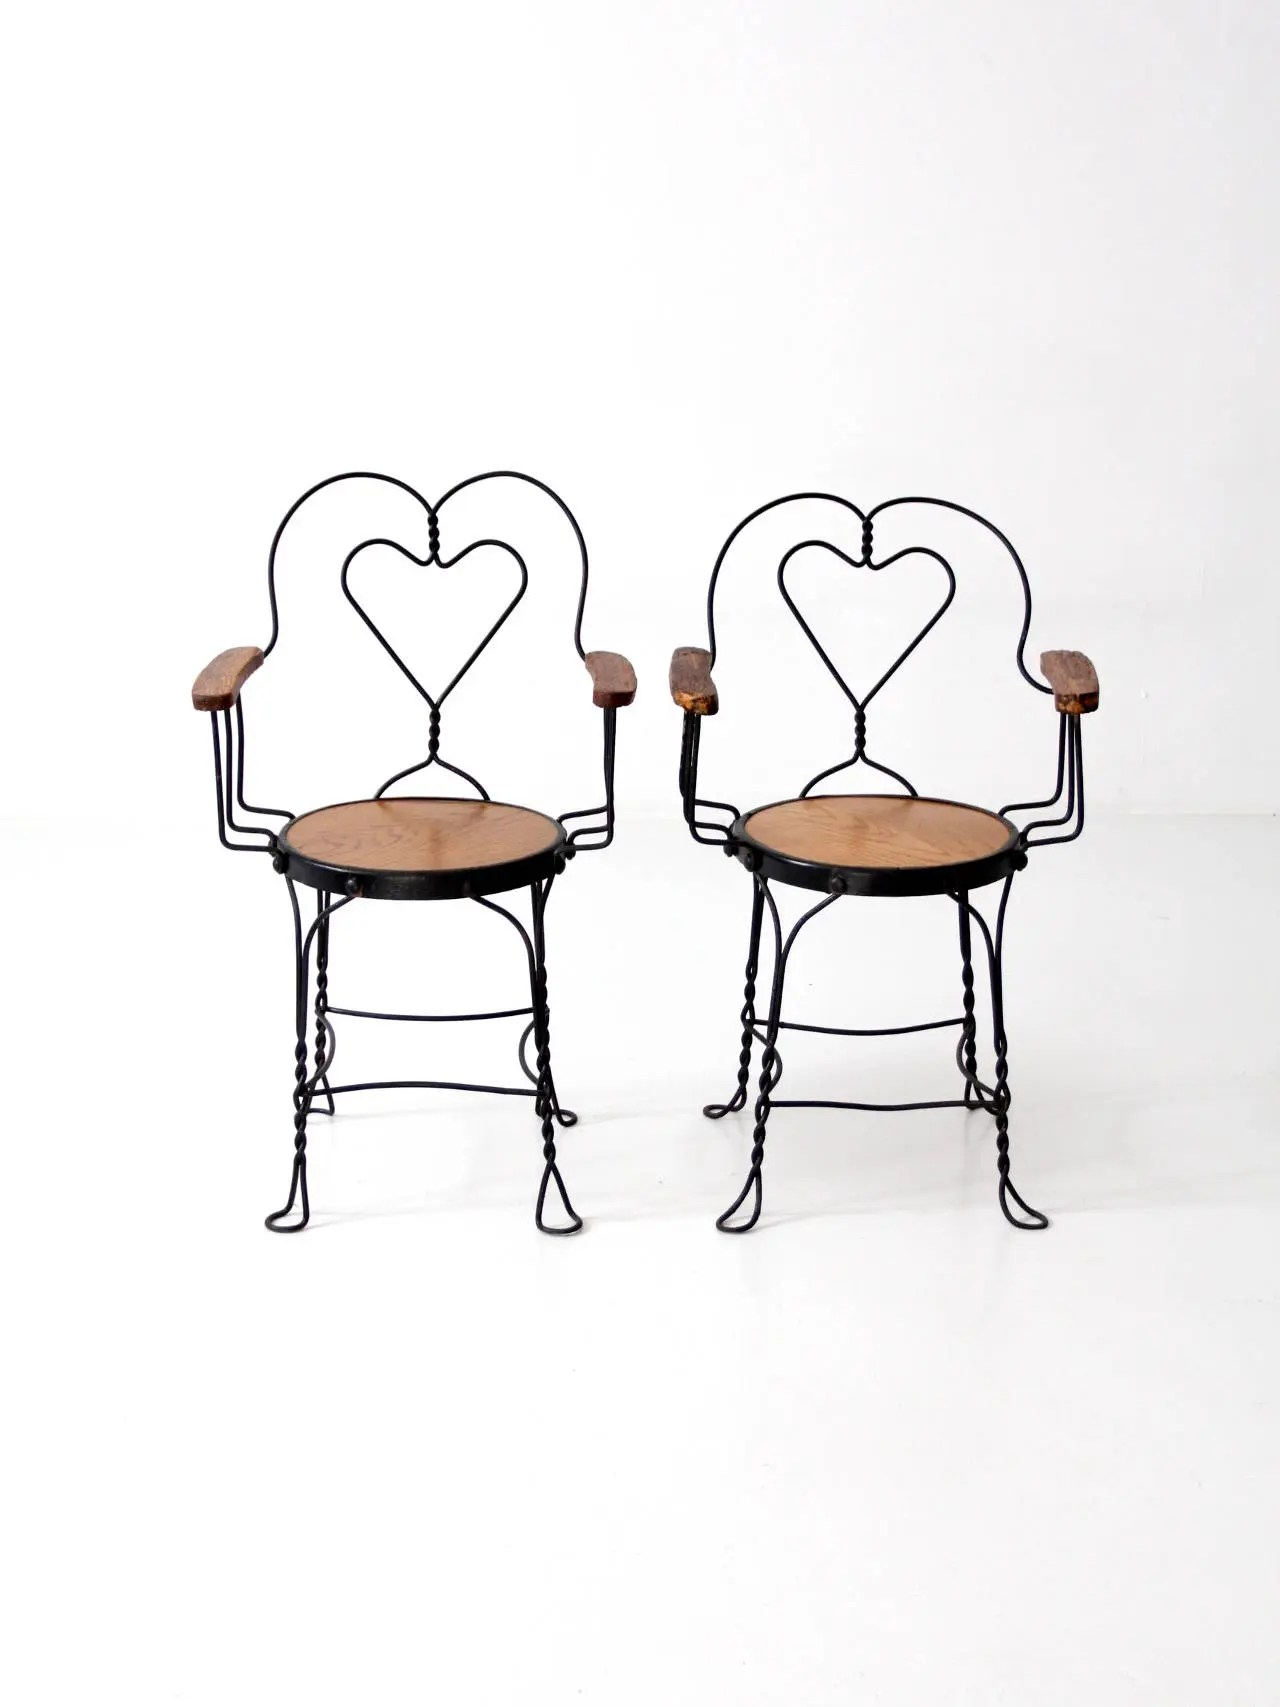 Antique Parlor Chairs Antique Ice Cream Parlor Chairs Heart Back Cafe Arm Chairs